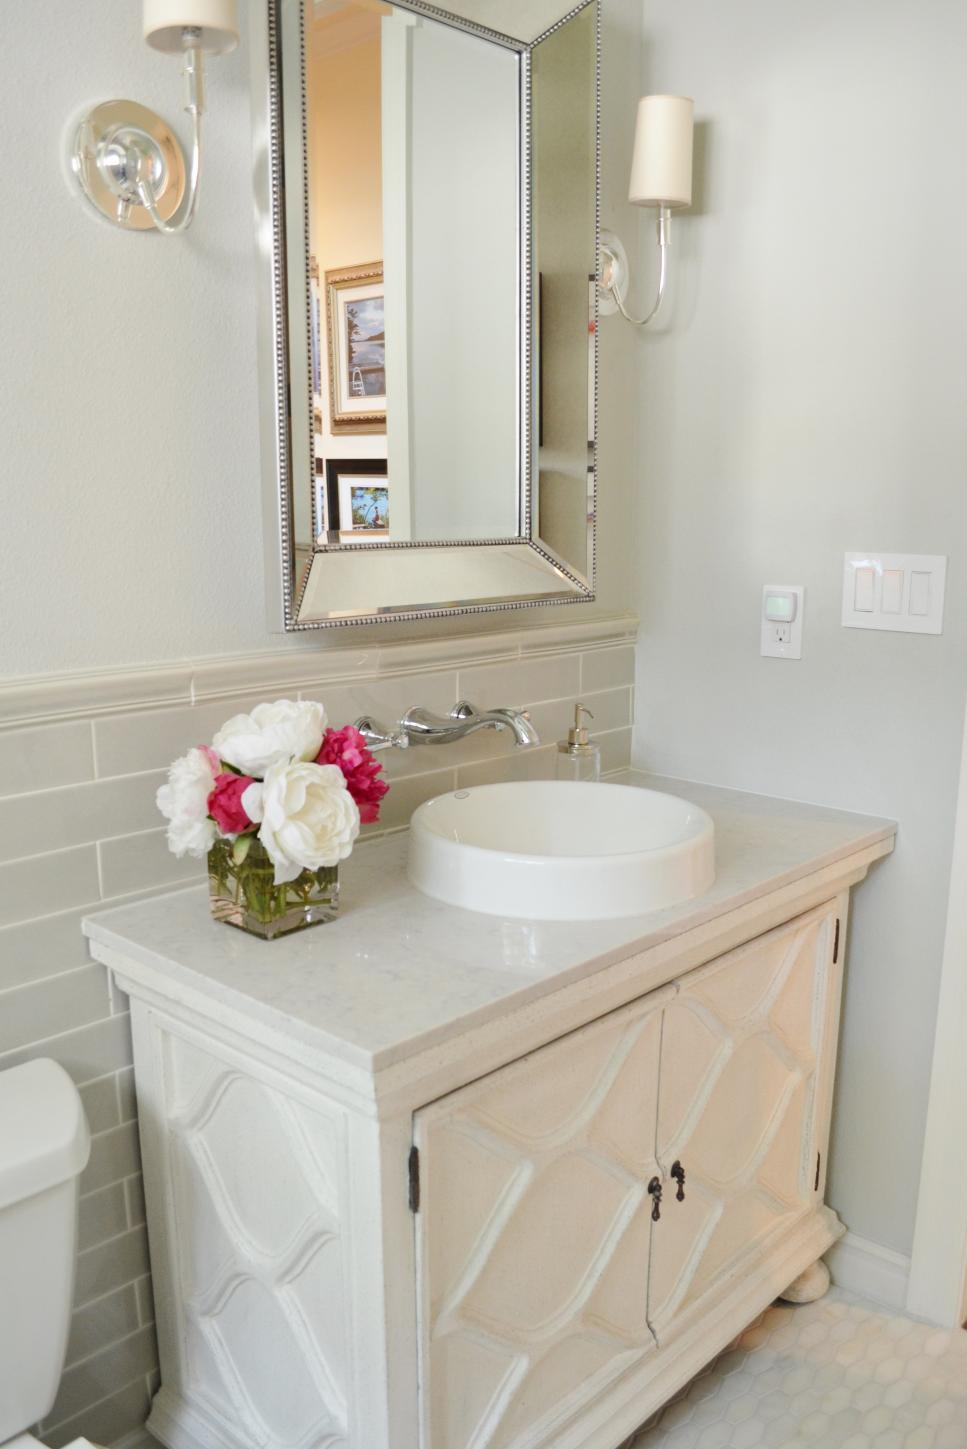 Before and after bathroom remodels on a budget hgtv - Small full bathroom remodel ideas ...